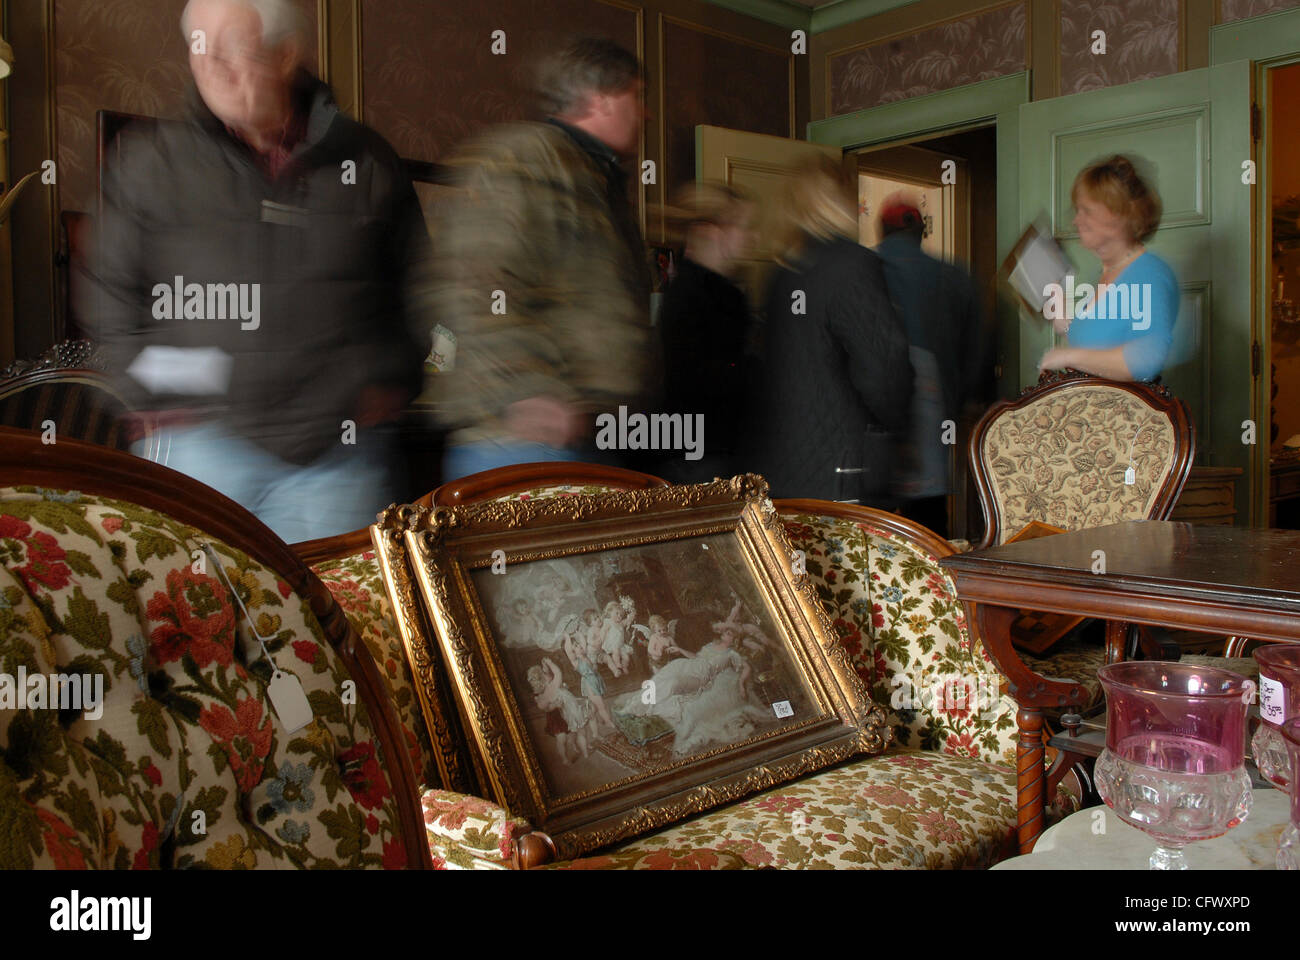 ... auction at the Glueck estate on 24th & Byrant.This was the mother of  all estate sales.In this picture: Room after room was filled with antique  furniture ... - RICHARD SENNOTT¥rsennott@startribune.com.Minneapolis, Mn. Friday